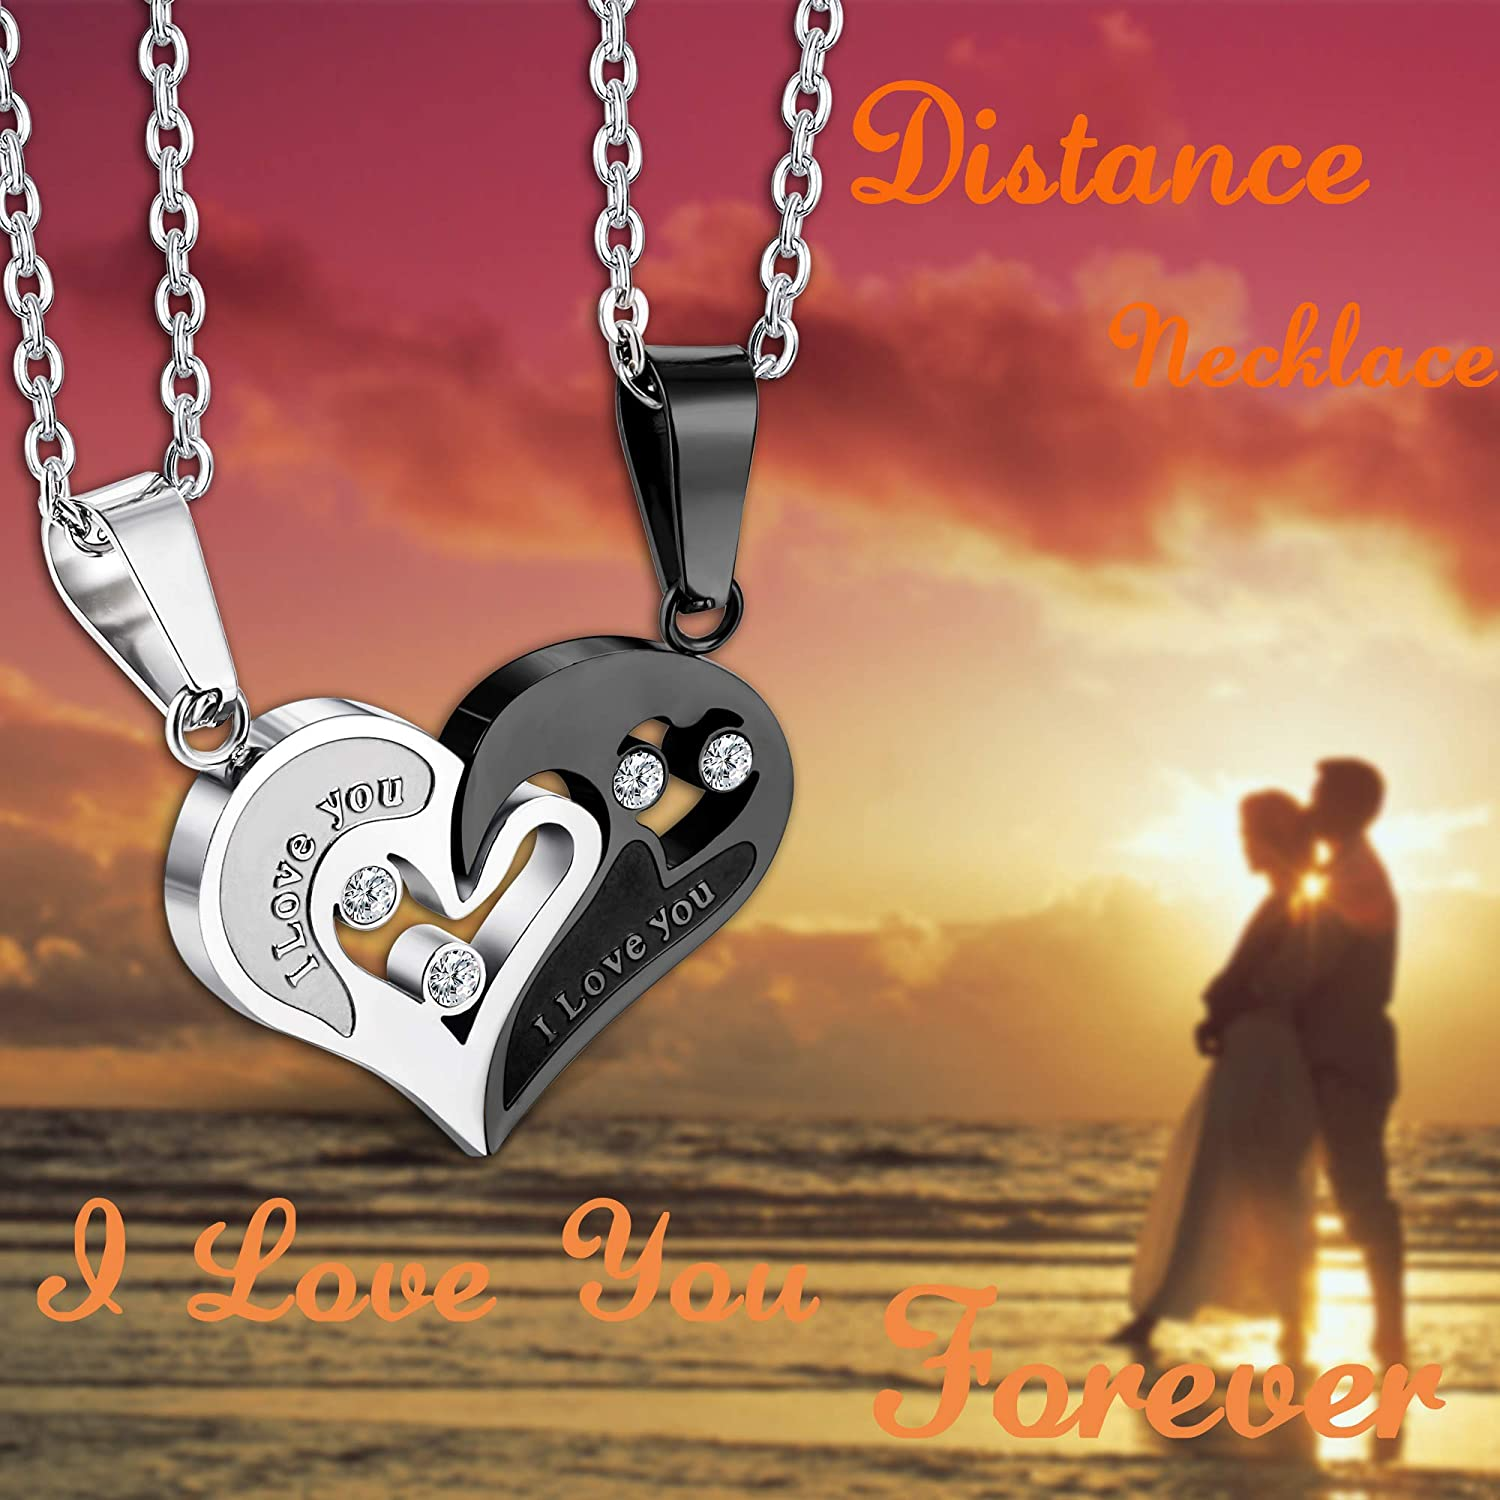 Man and Woman Romantic Couple Sweethearts Love Jump Ring Charm Pendant Necklace #14K Gold Plated over 925 Sterling Silver #Azaggi N0399G